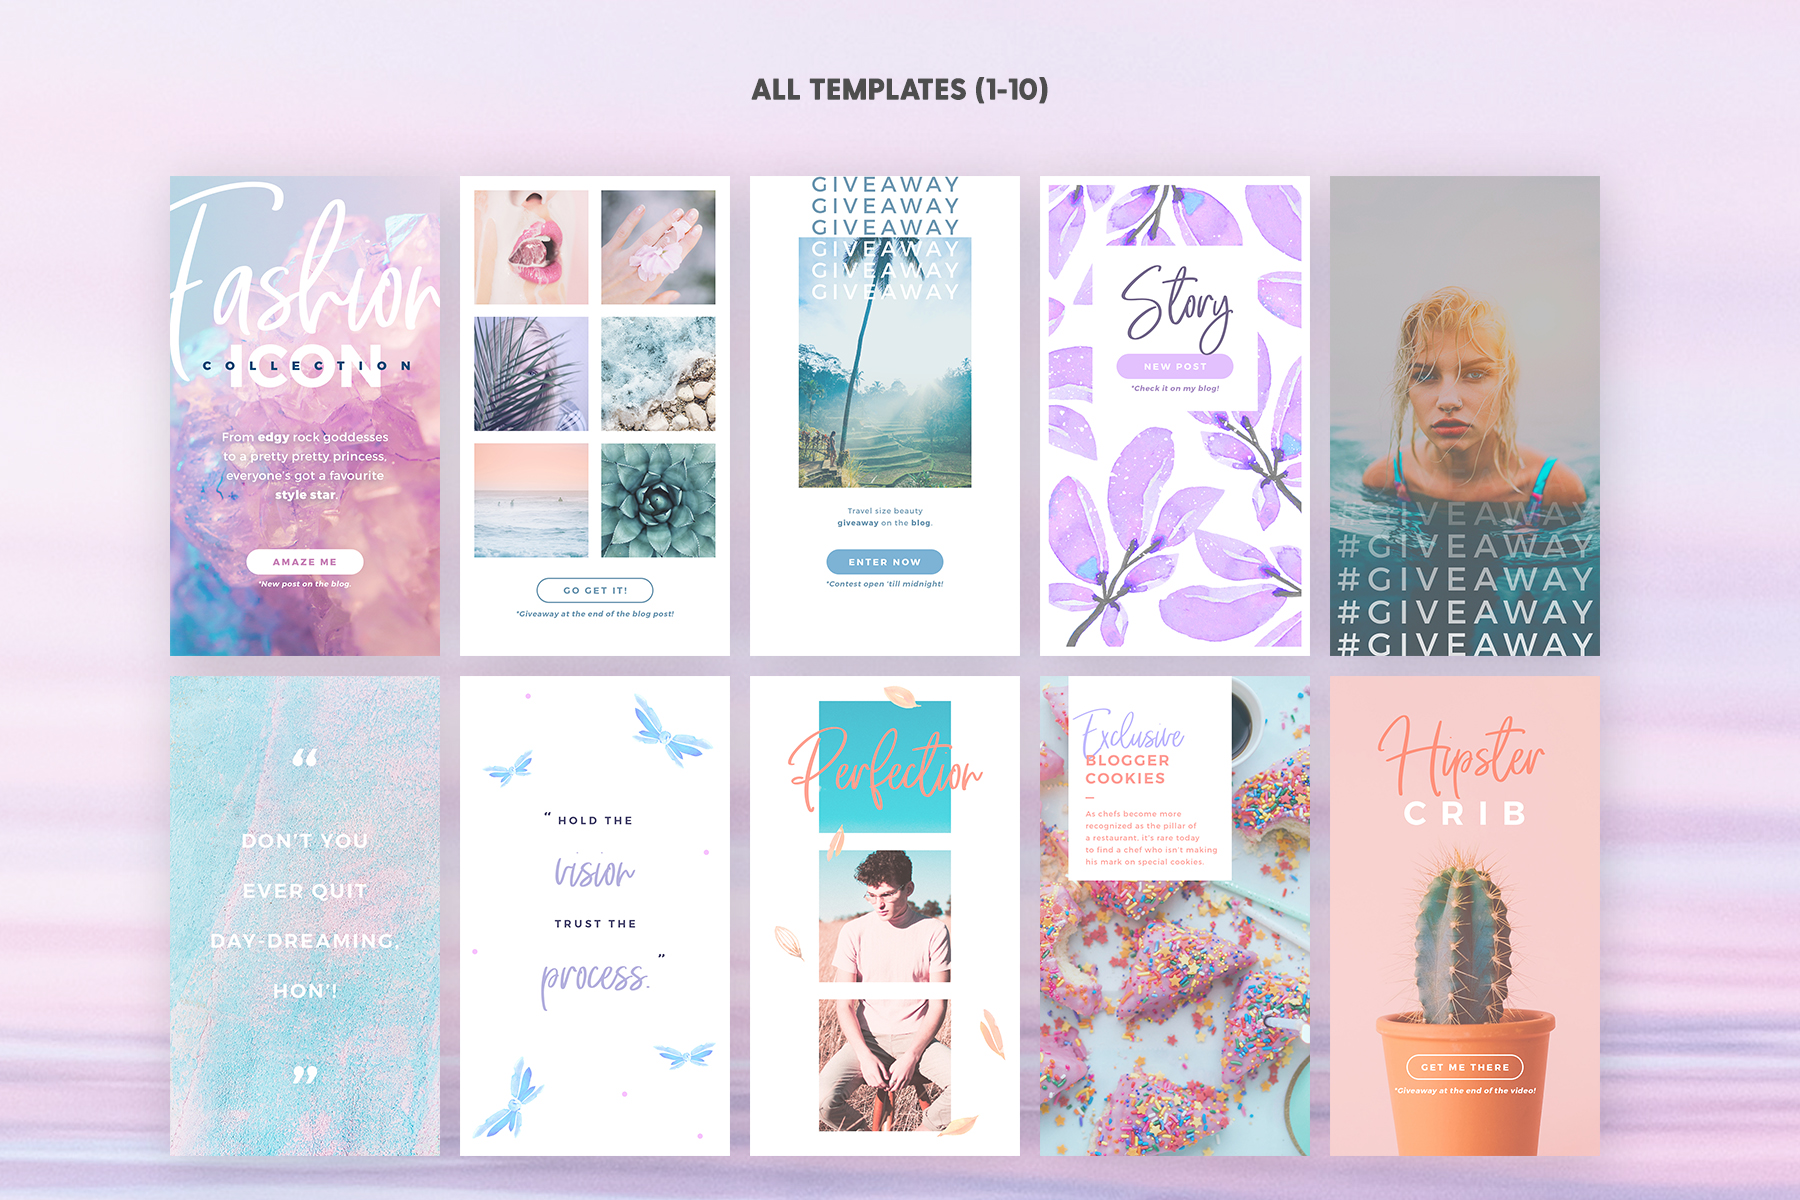 Instagram Stories - Dreamy Vibes Ed. Graphic Web Elements By lavie1blonde - Image 3